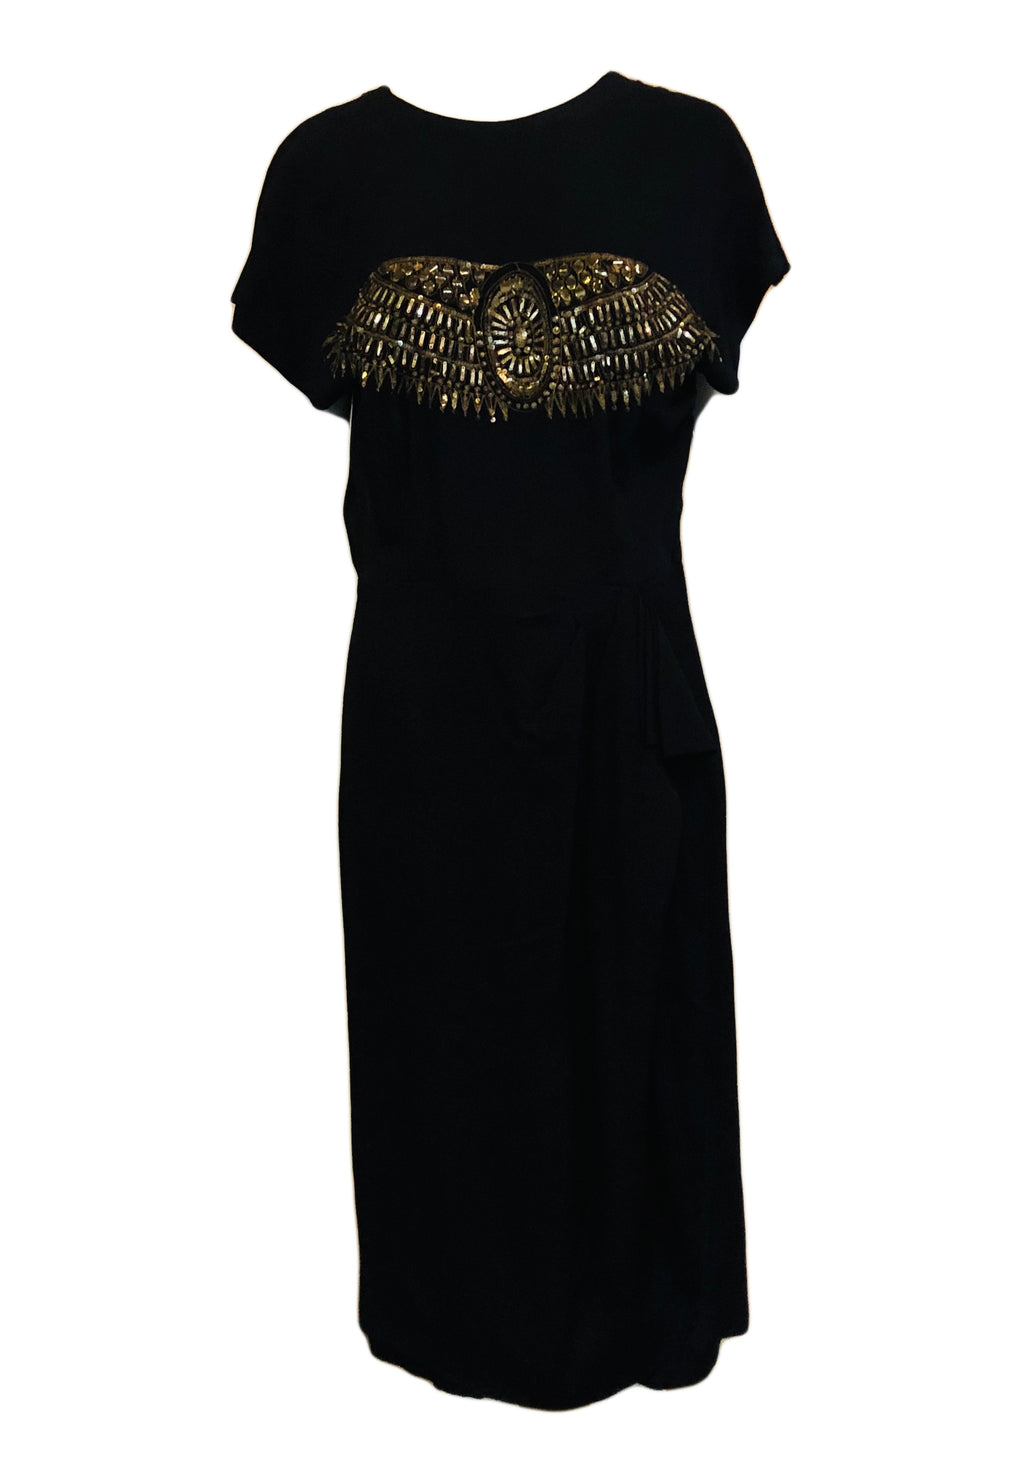 40s Dress Noir  Black Crepe Cocktail with Gold Tone Paillettes FRONT 1 of 4